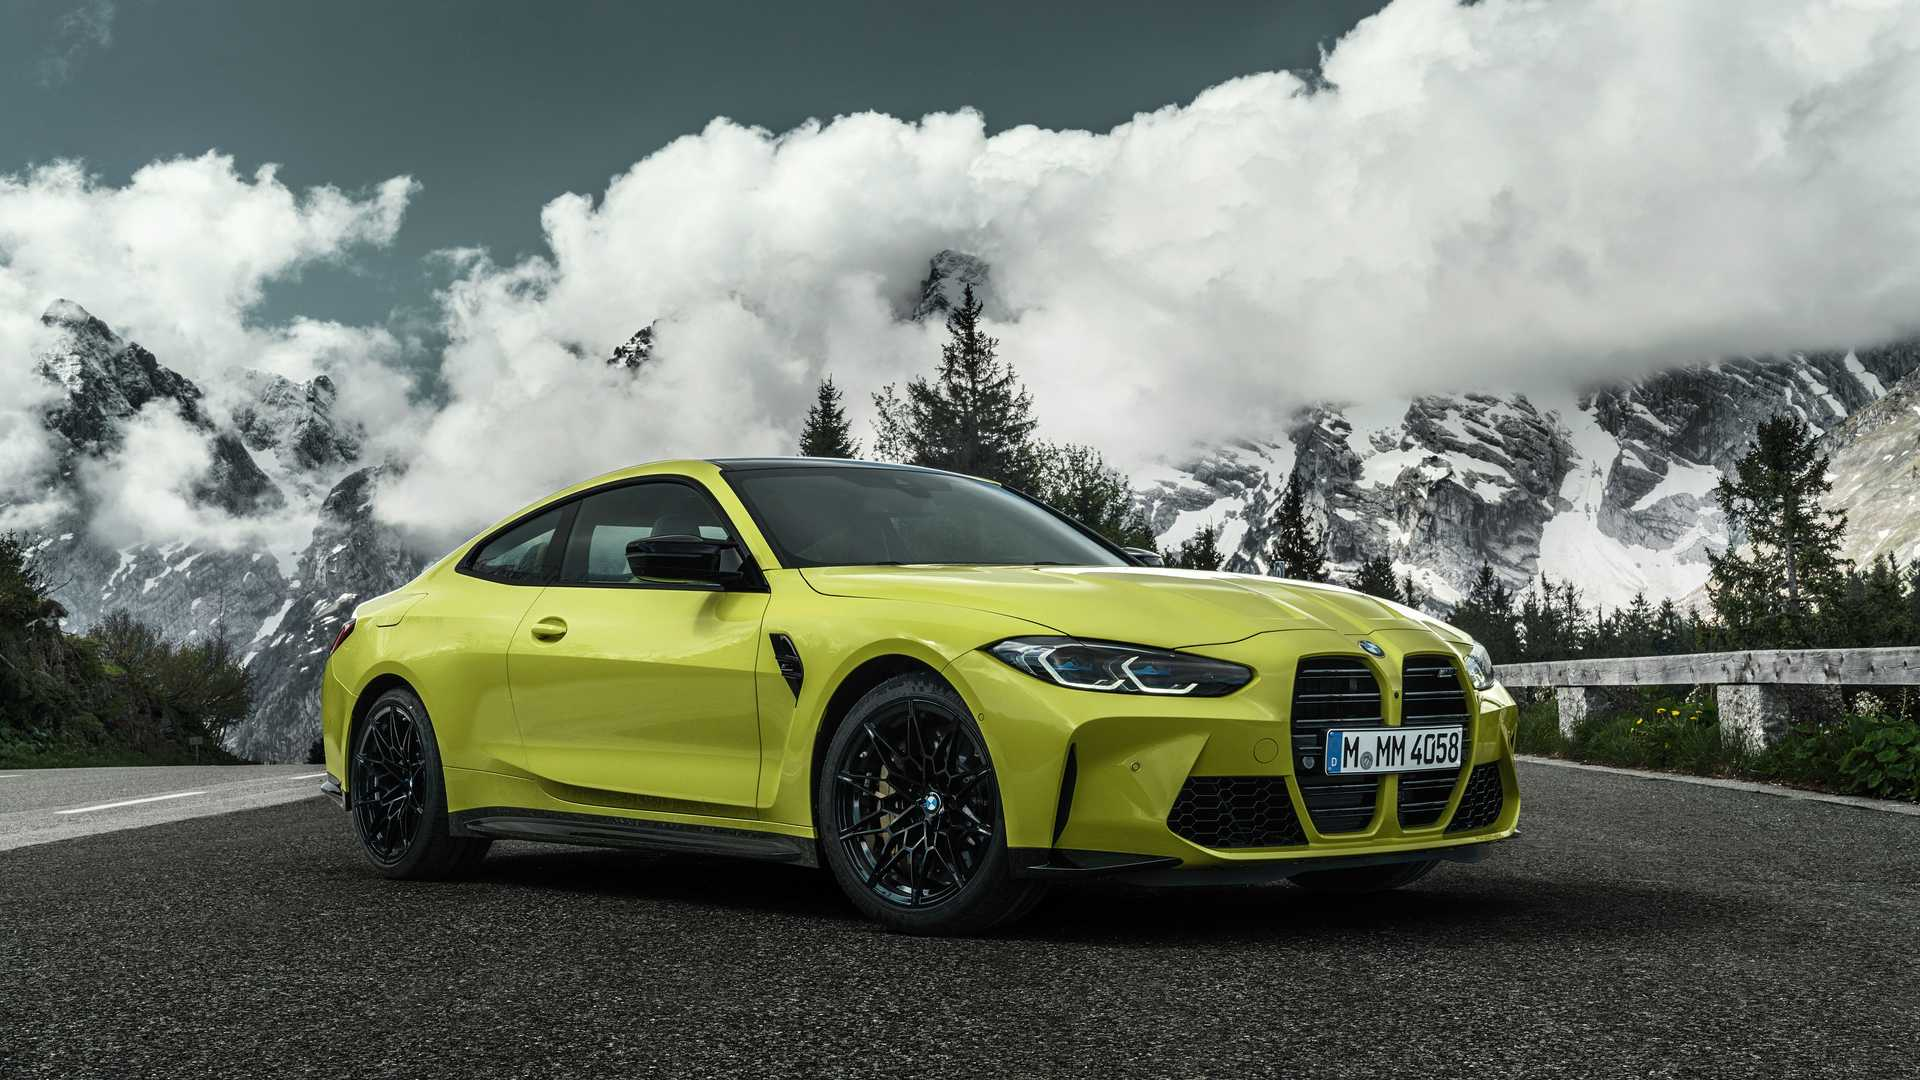 6th-Gen BMW M3 and M4 Introduced with Exaggerated Grille-3